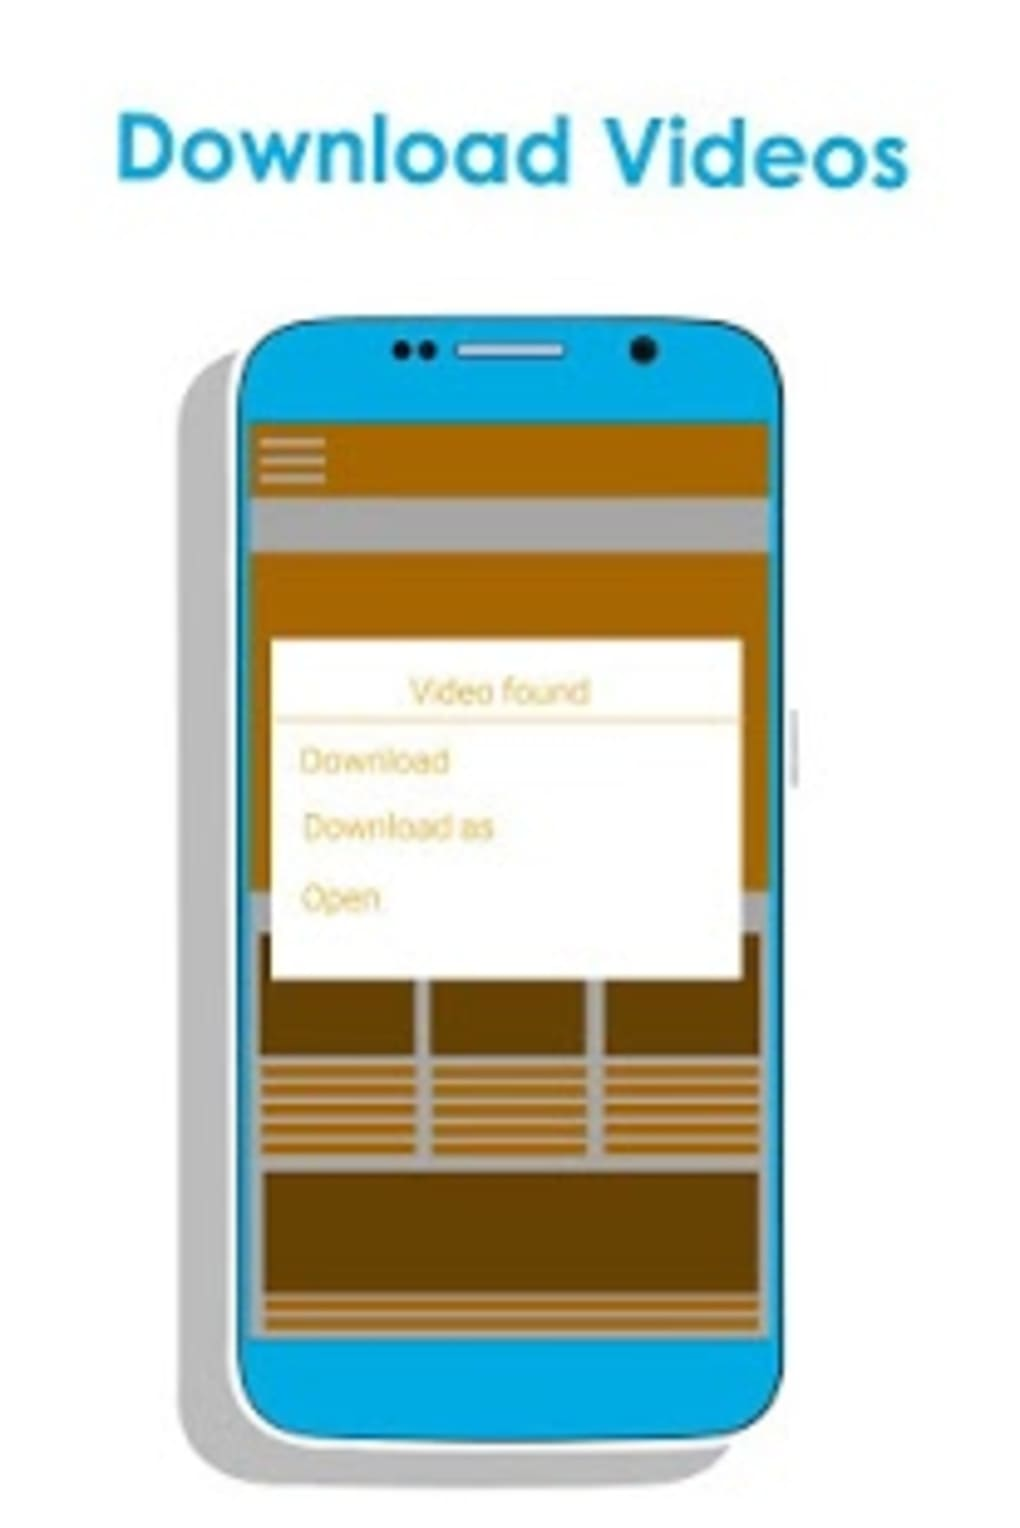 All video Downloader APK for Android - Download